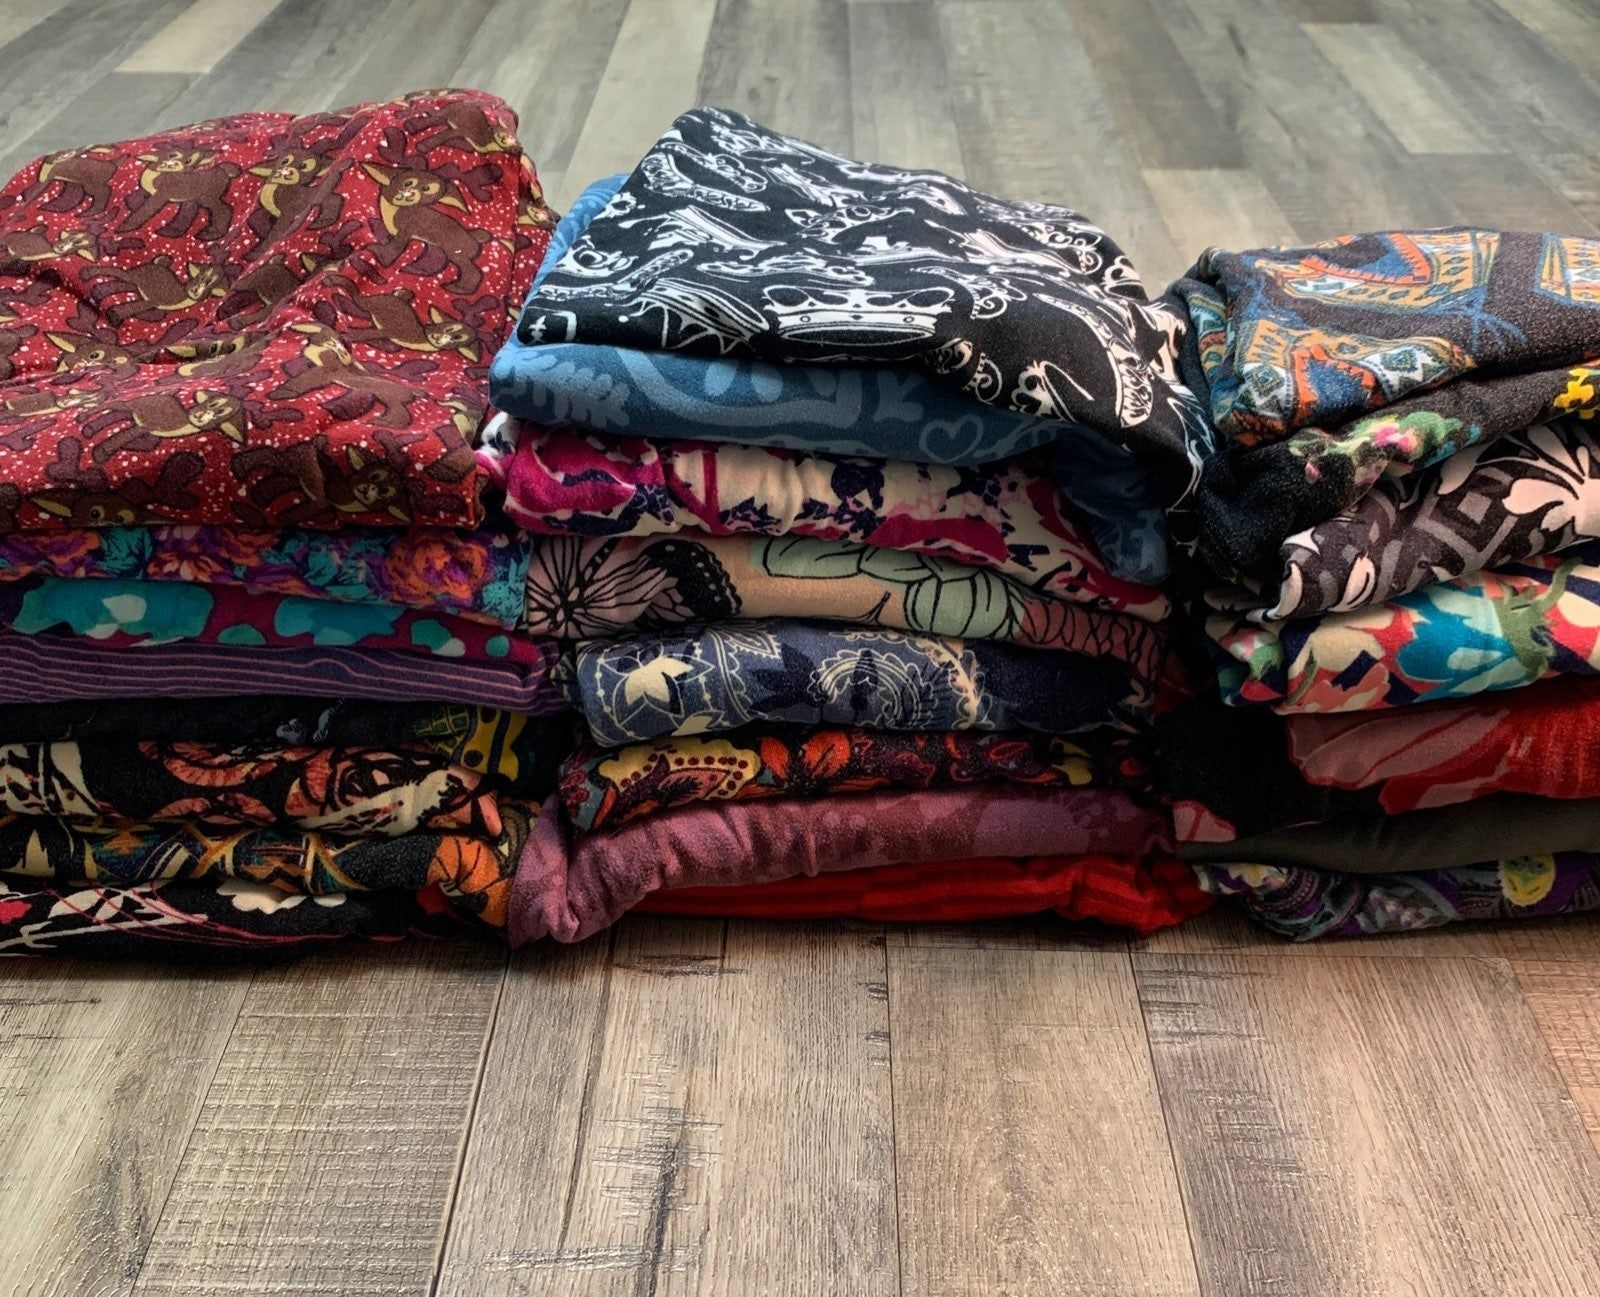 Lot Of 23 Pairs One Size Lularow Leggings Includes Htf Prints Like Crowns Disney Christmas Cruise Ships Lots Of Fl Lularoe Leggings Christmas Cruises Pairs